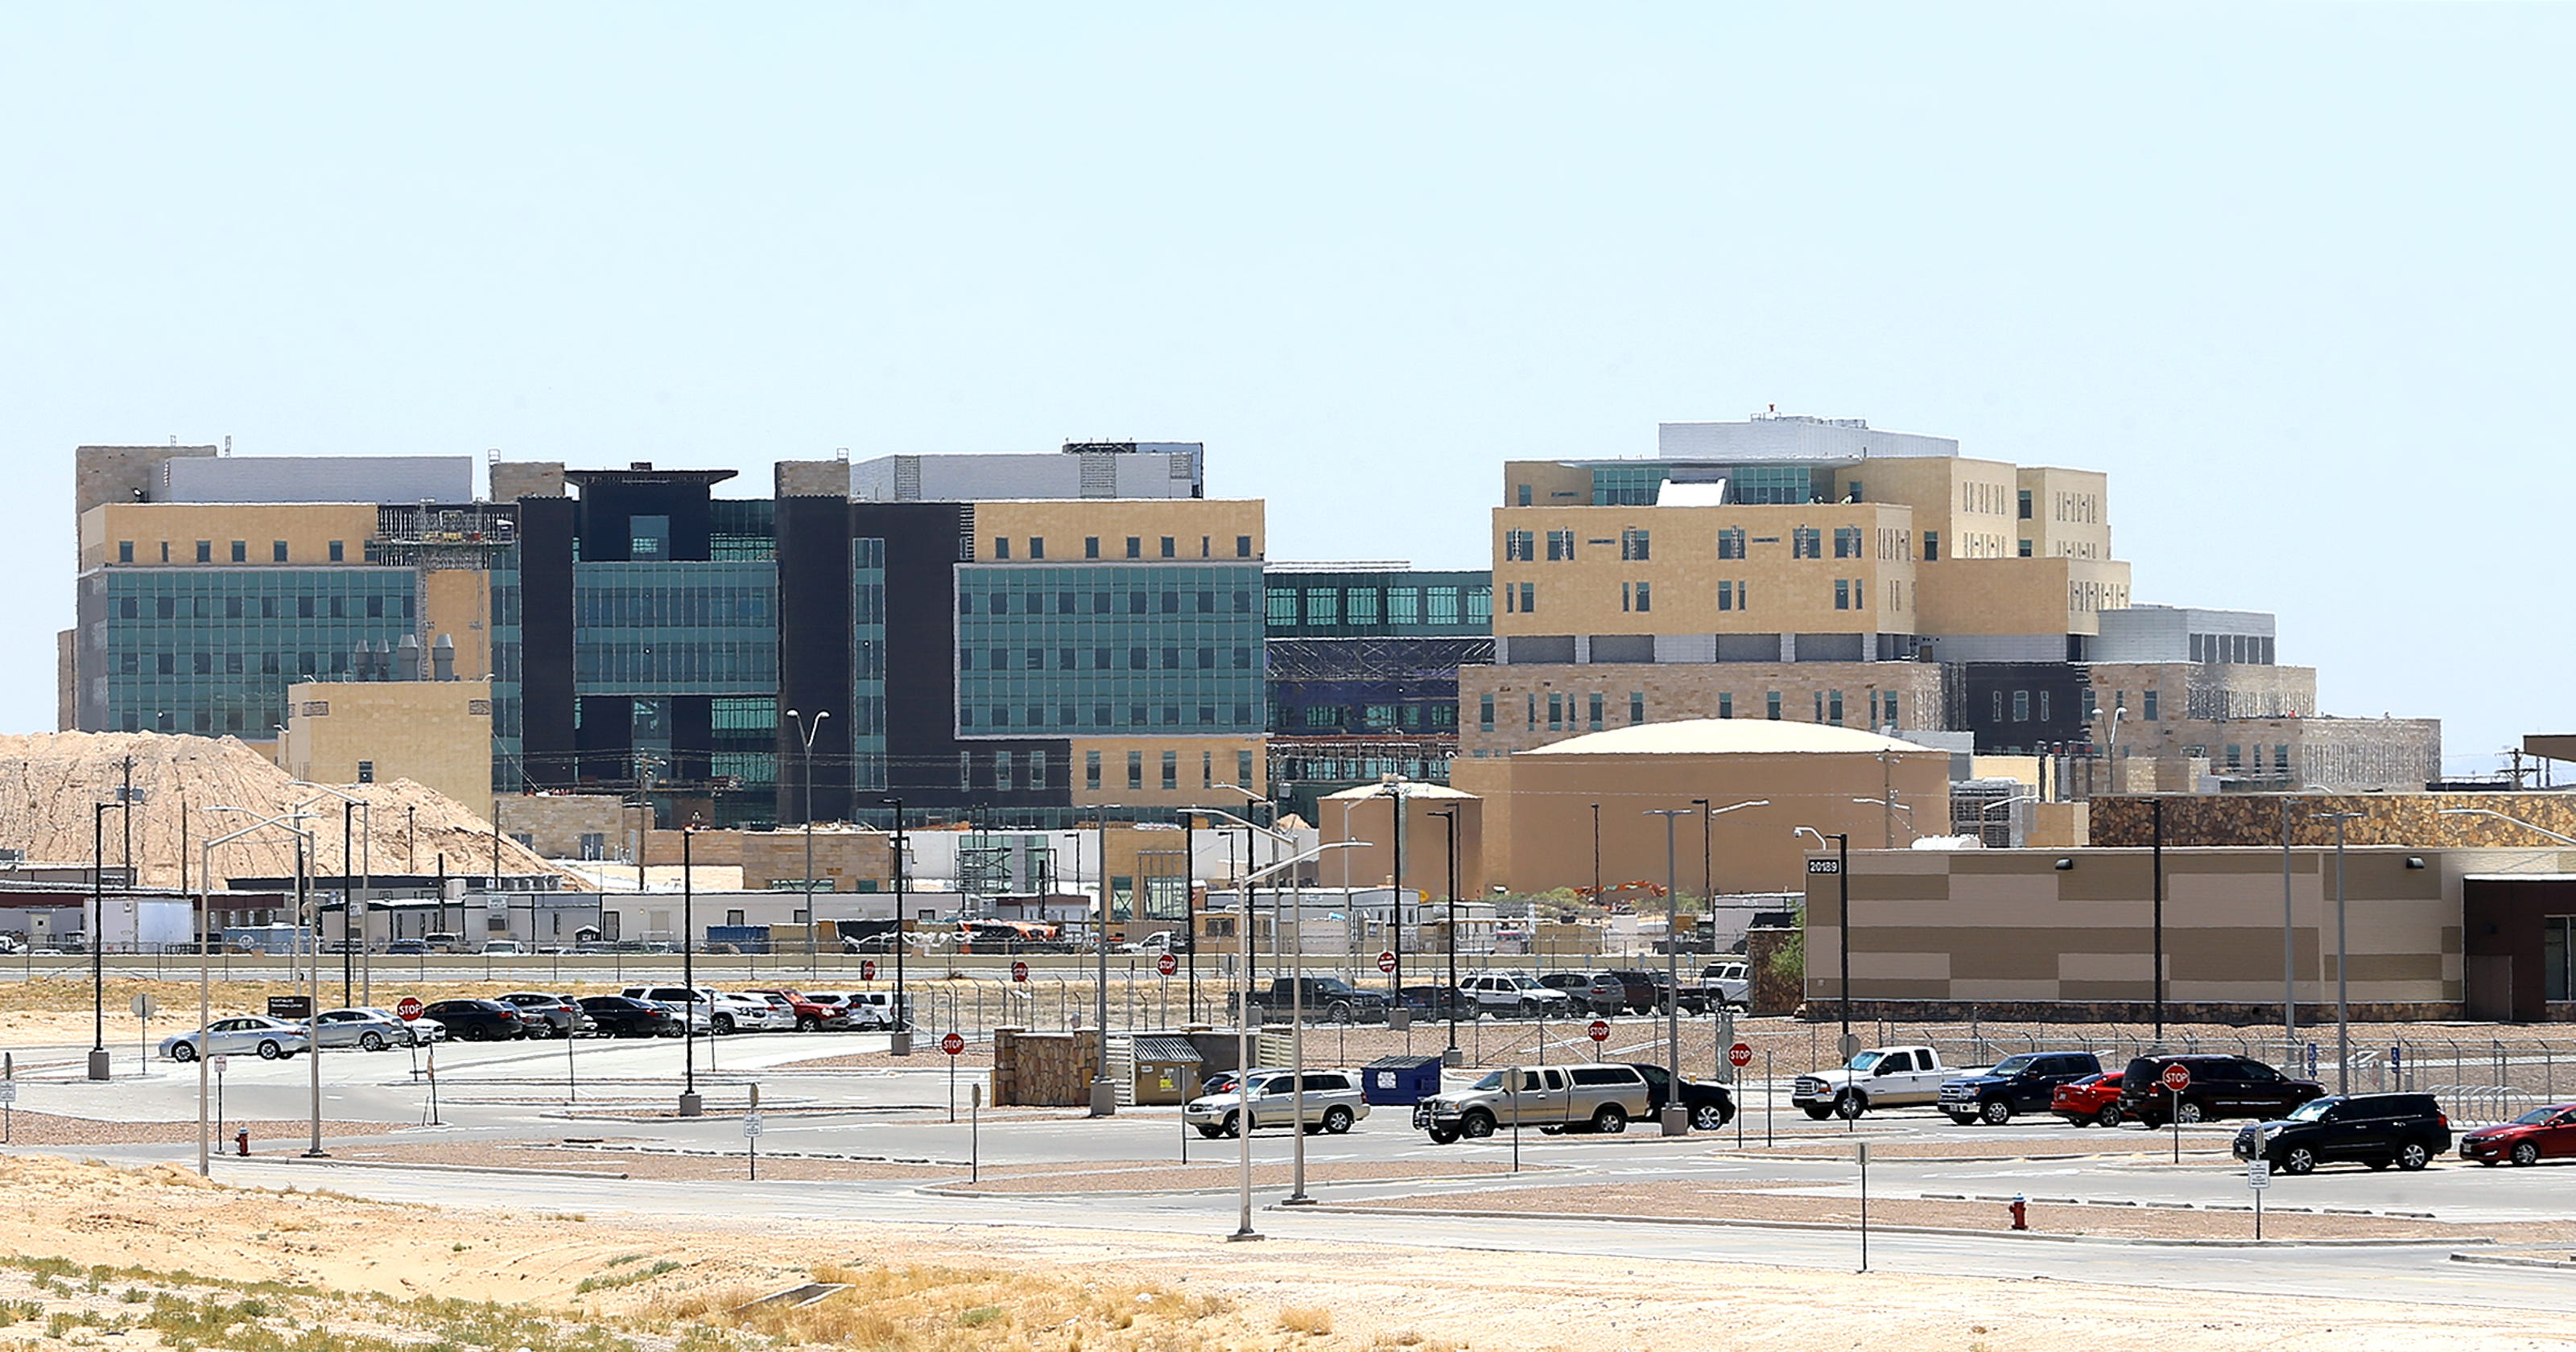 Fort Bliss hospital cost balloons due to design errors